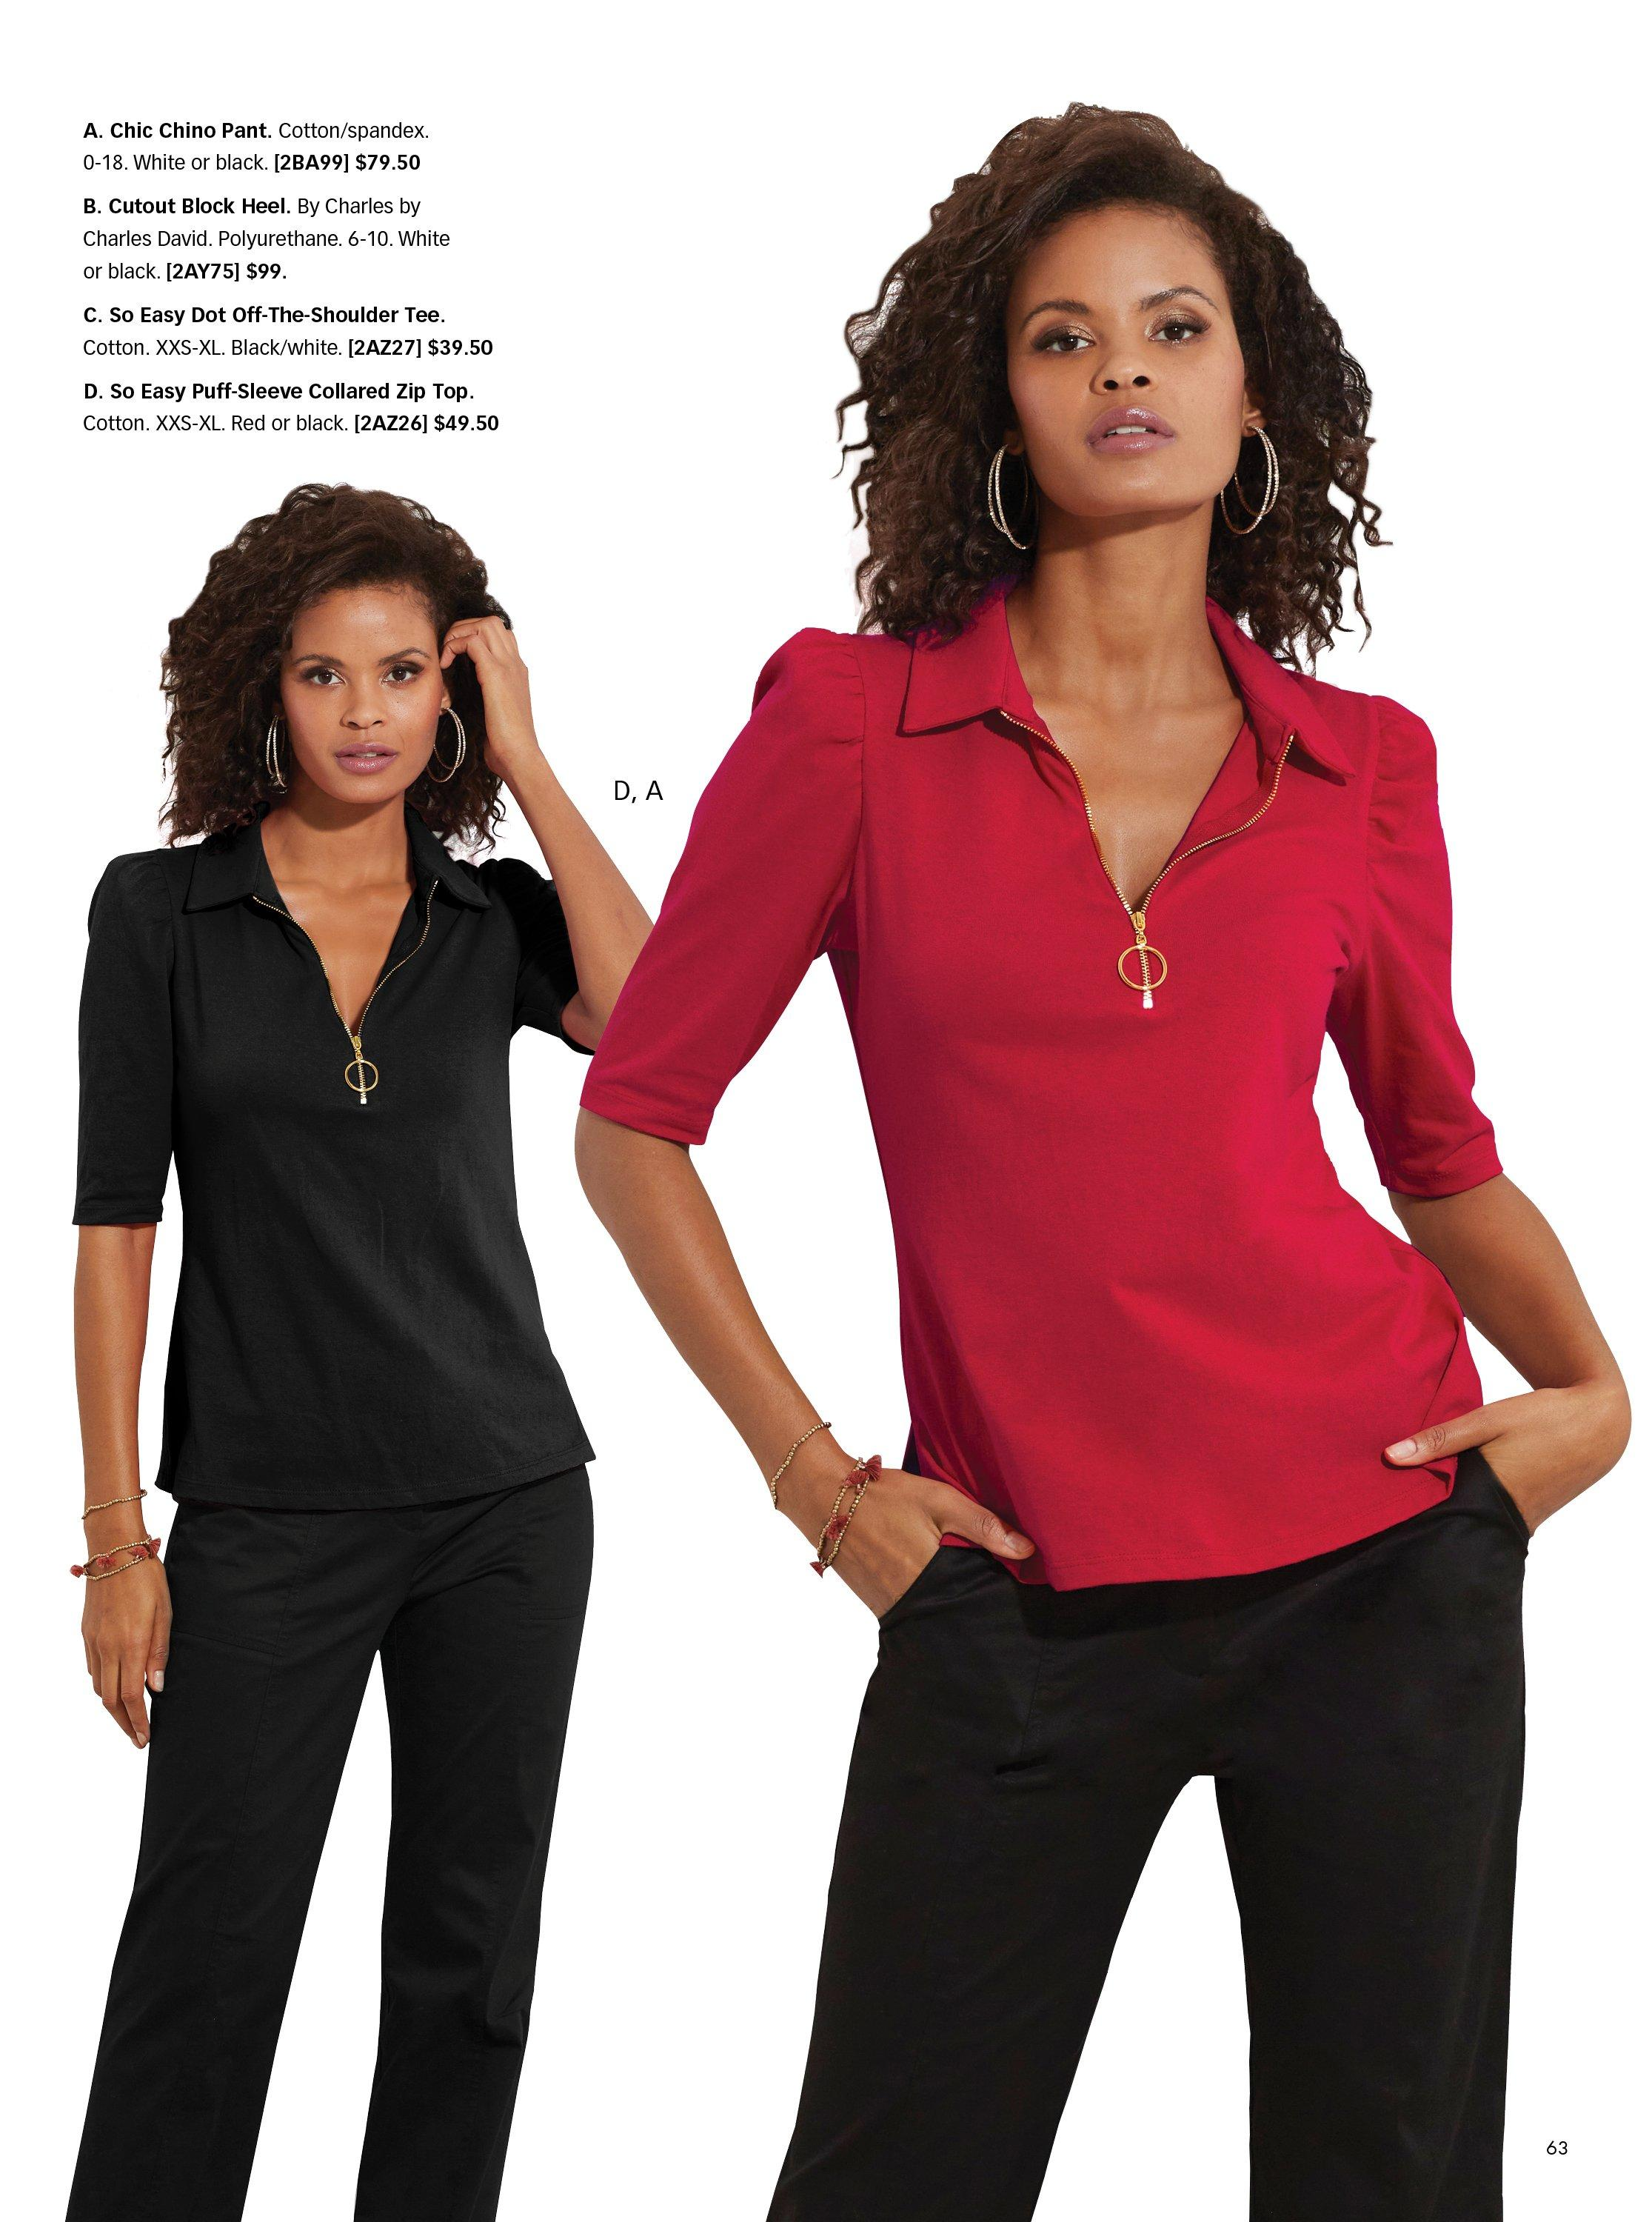 left model wearing a black collared short sleeve zippered top and black pants. right model wearing same outfit with red top.